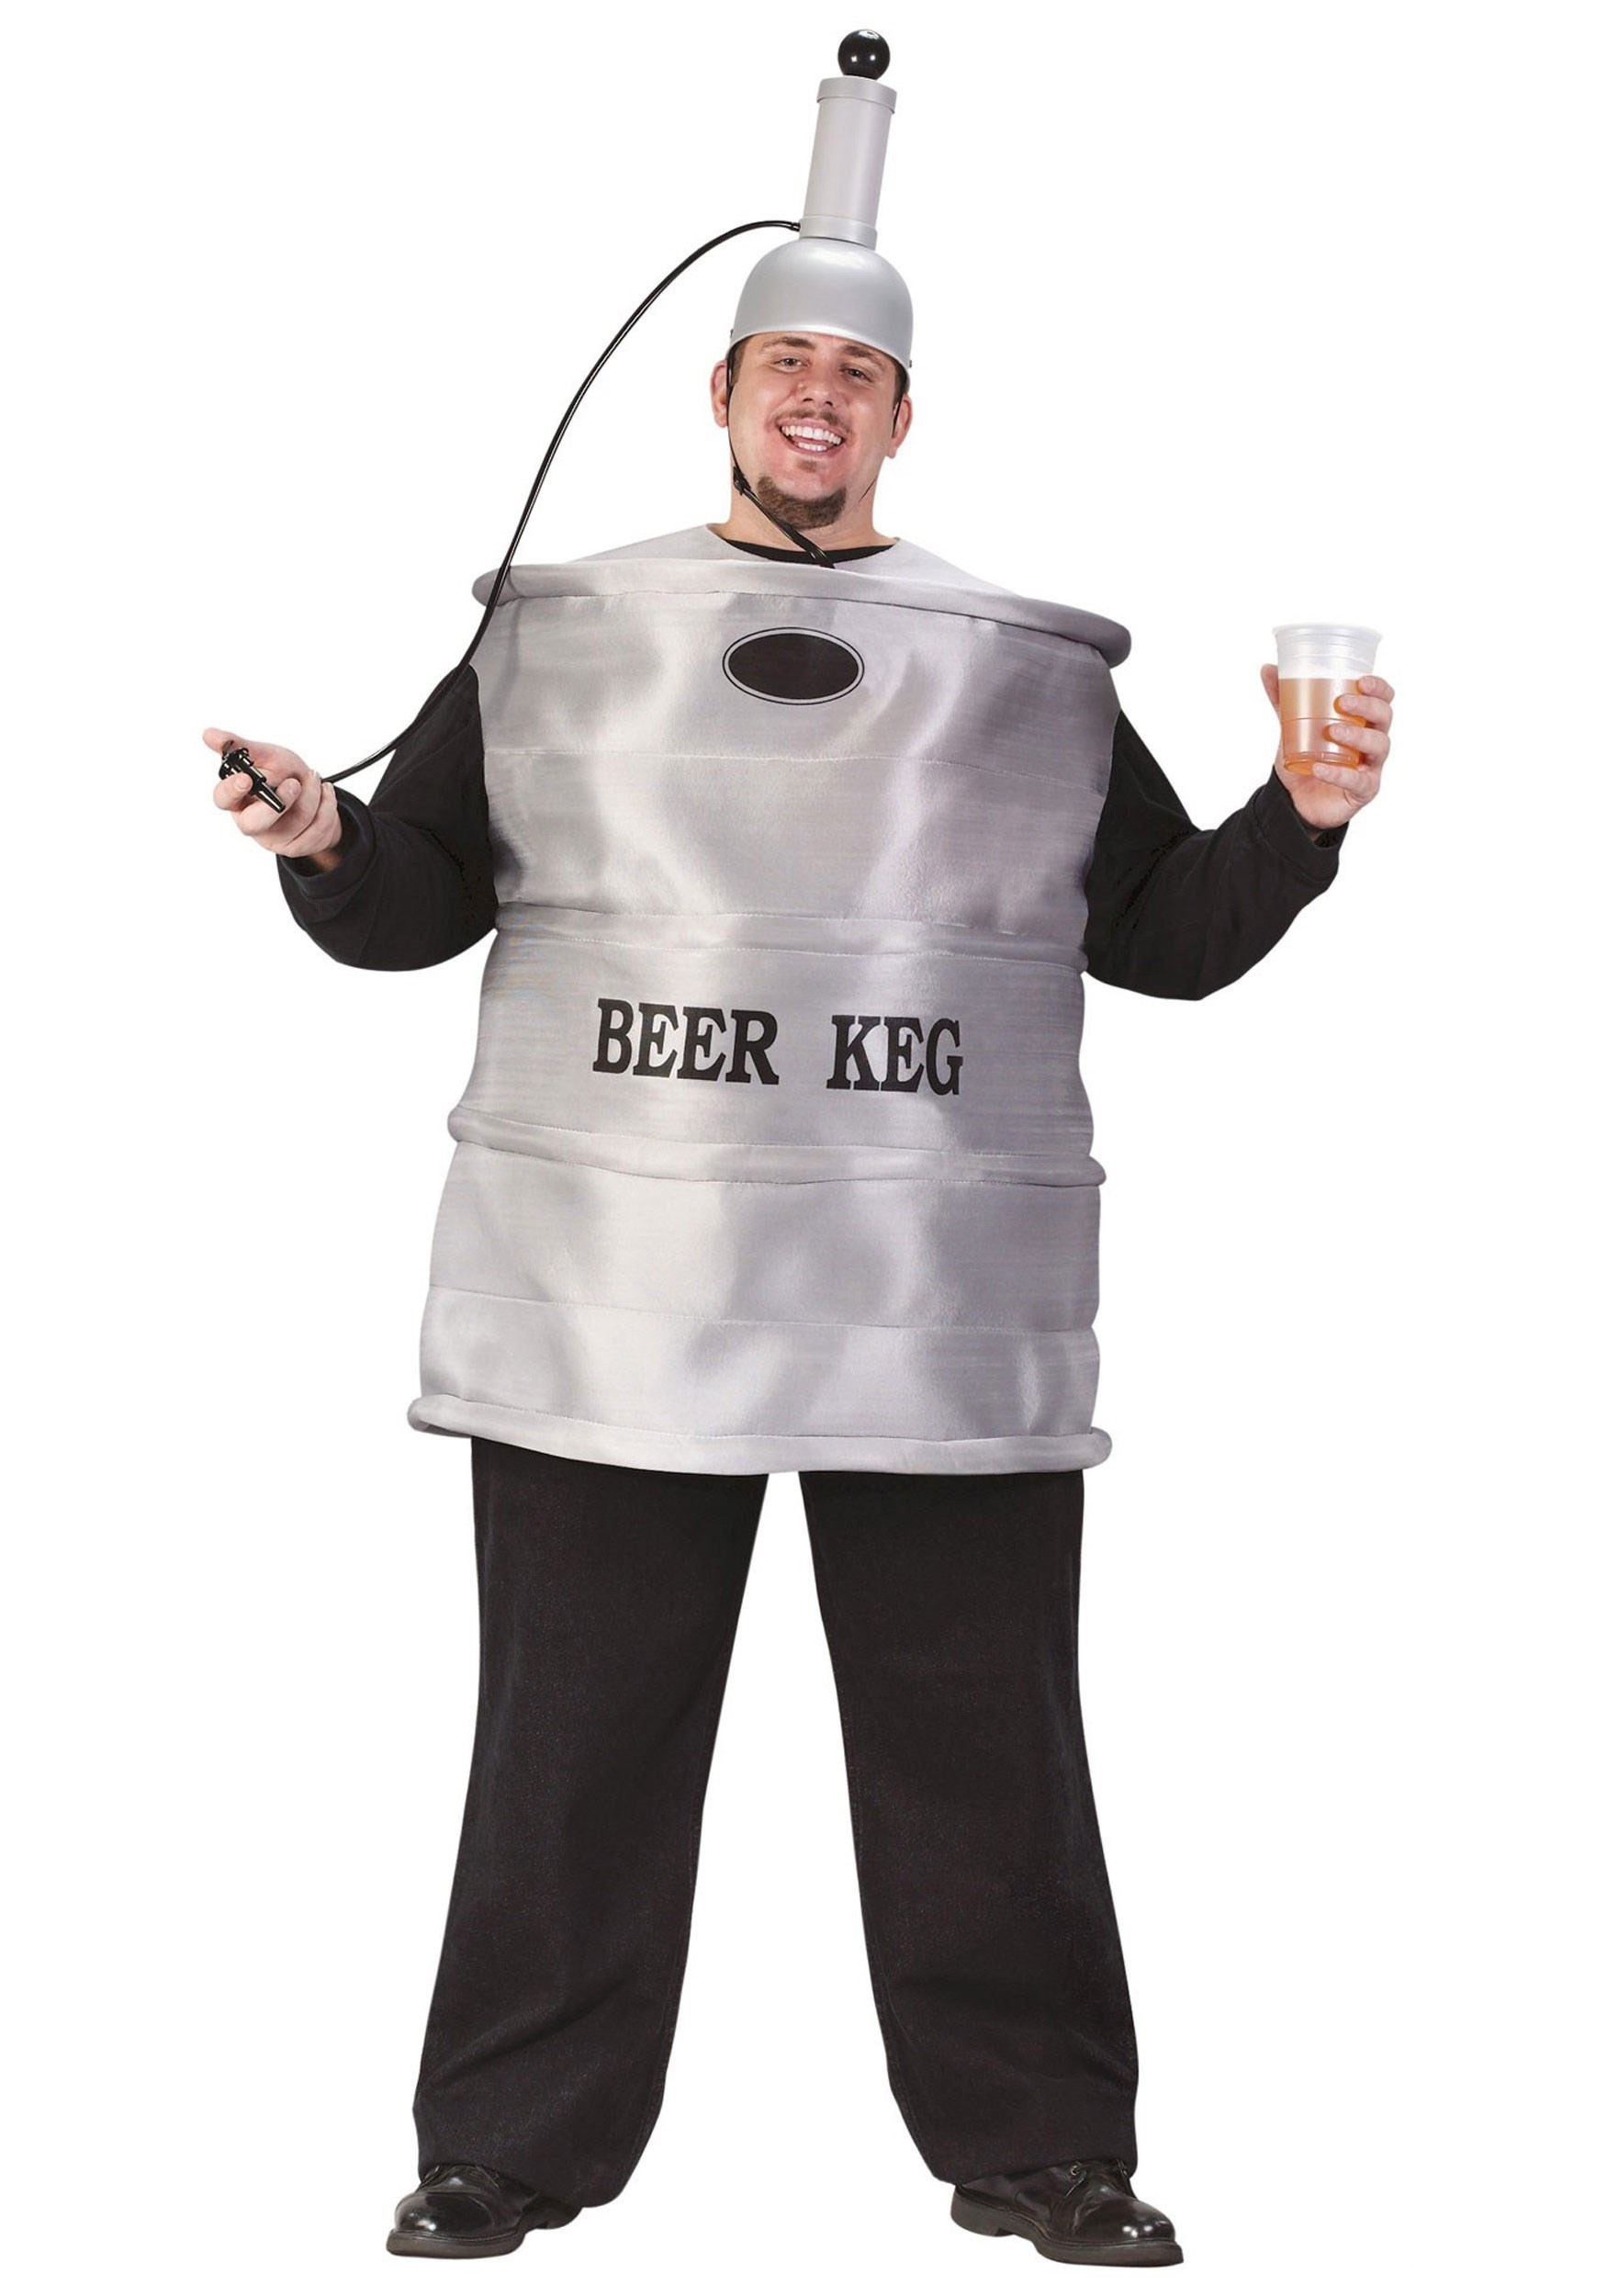 Plus Size Beer Keg Party Costume - Adult Beer Costumes for Halloween